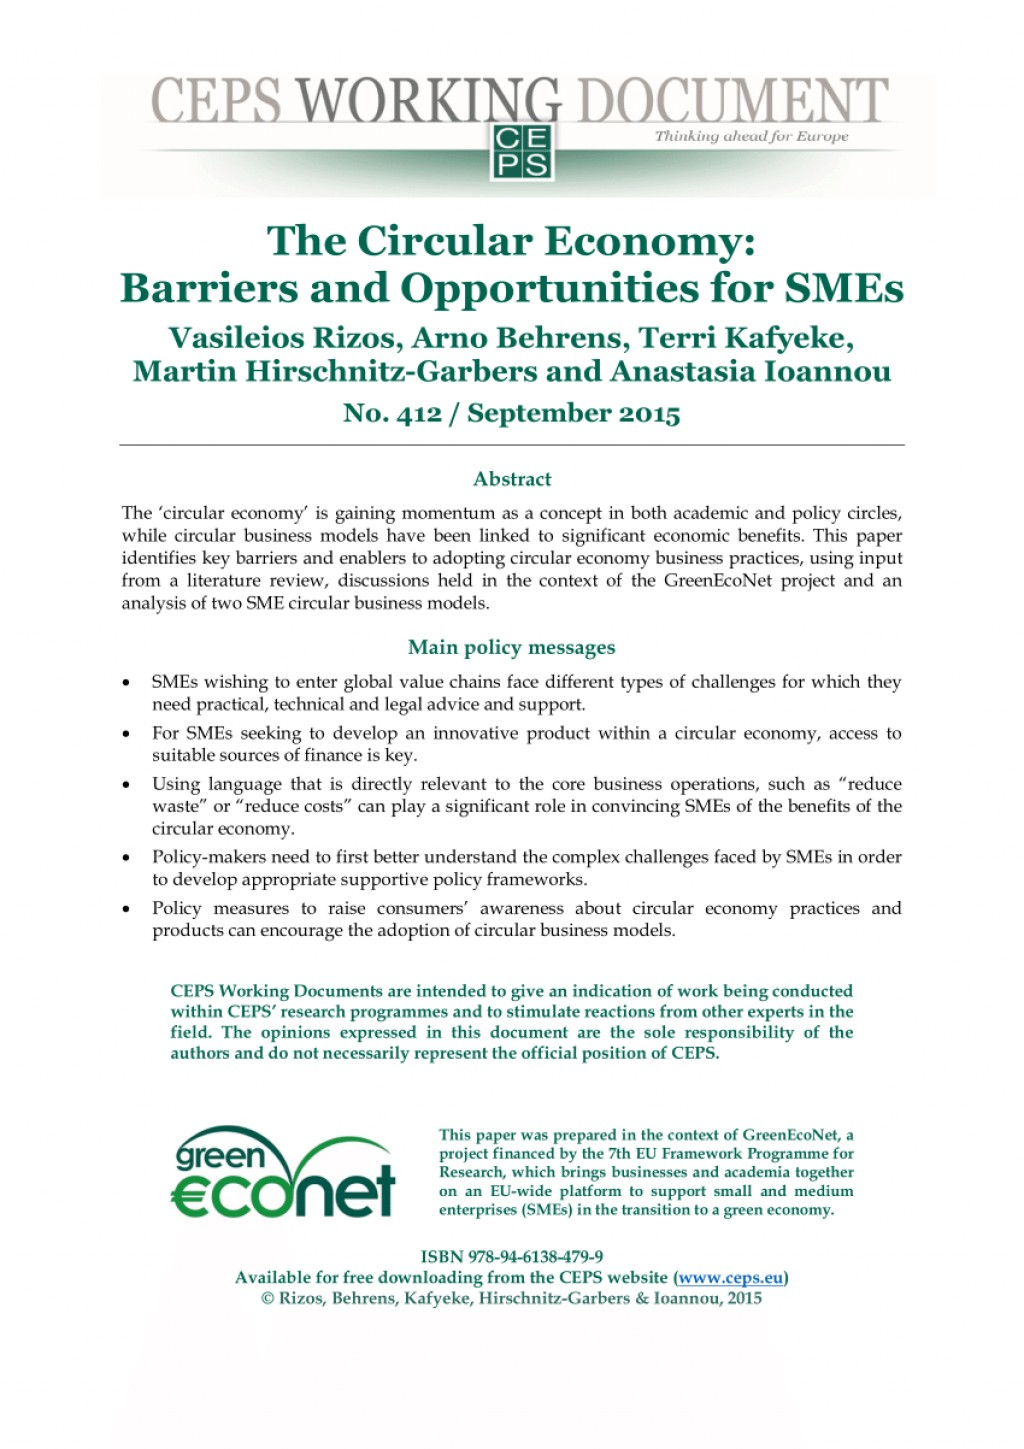 003 Largepreview Circular Economy Researchs Shocking Research Papers Large